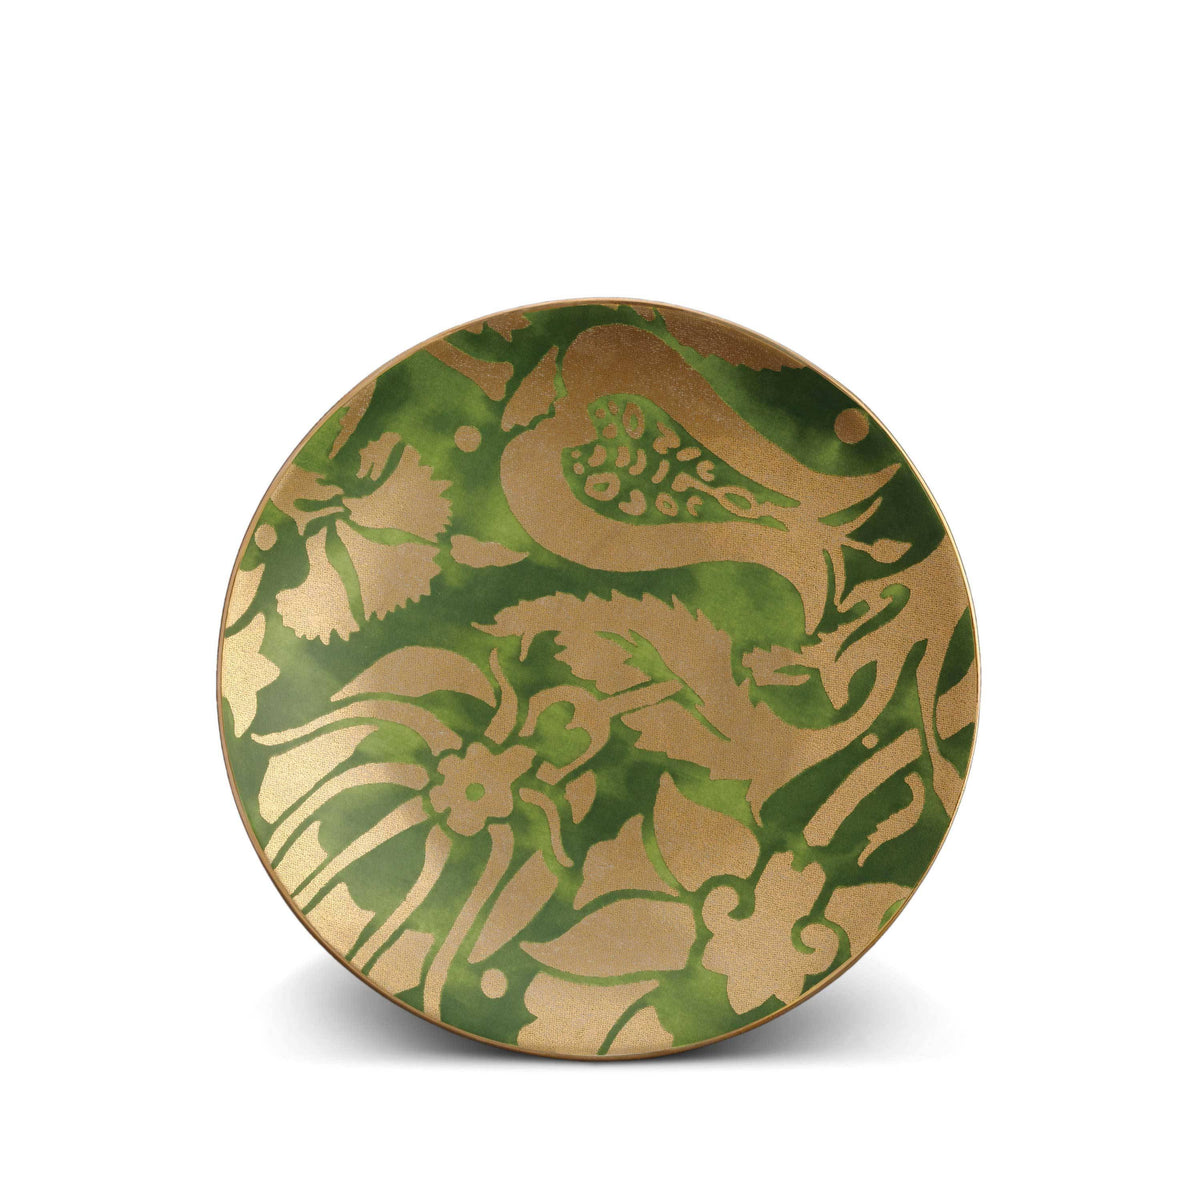 Fortuny Melagrana Dessert Plates, Set of 4